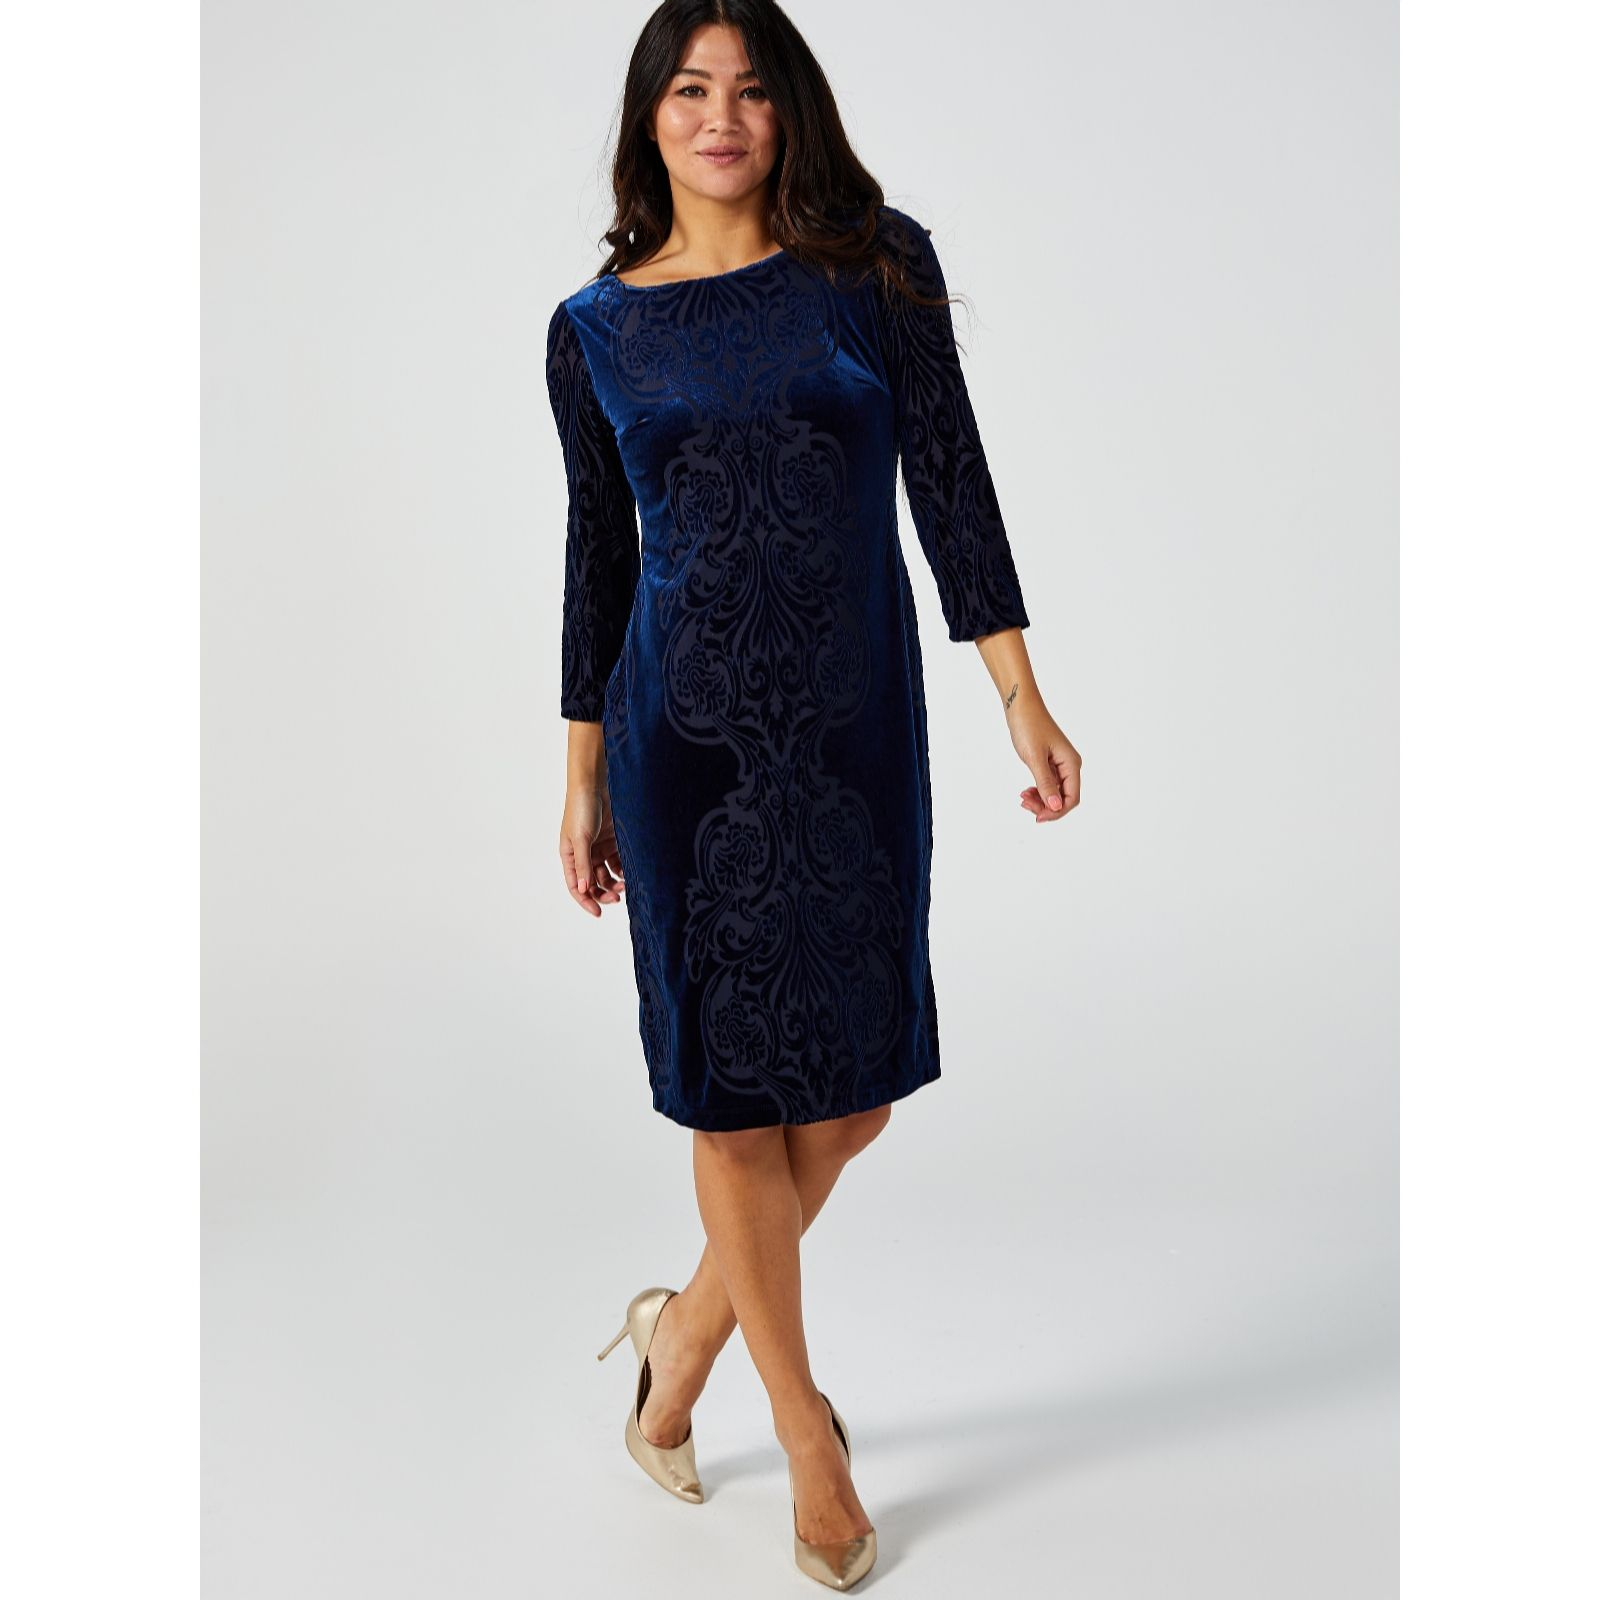 d5cea19c1e7bf Ronni Nicole 3/4 Sleeve Burnout Velvet Dress - QVC UK